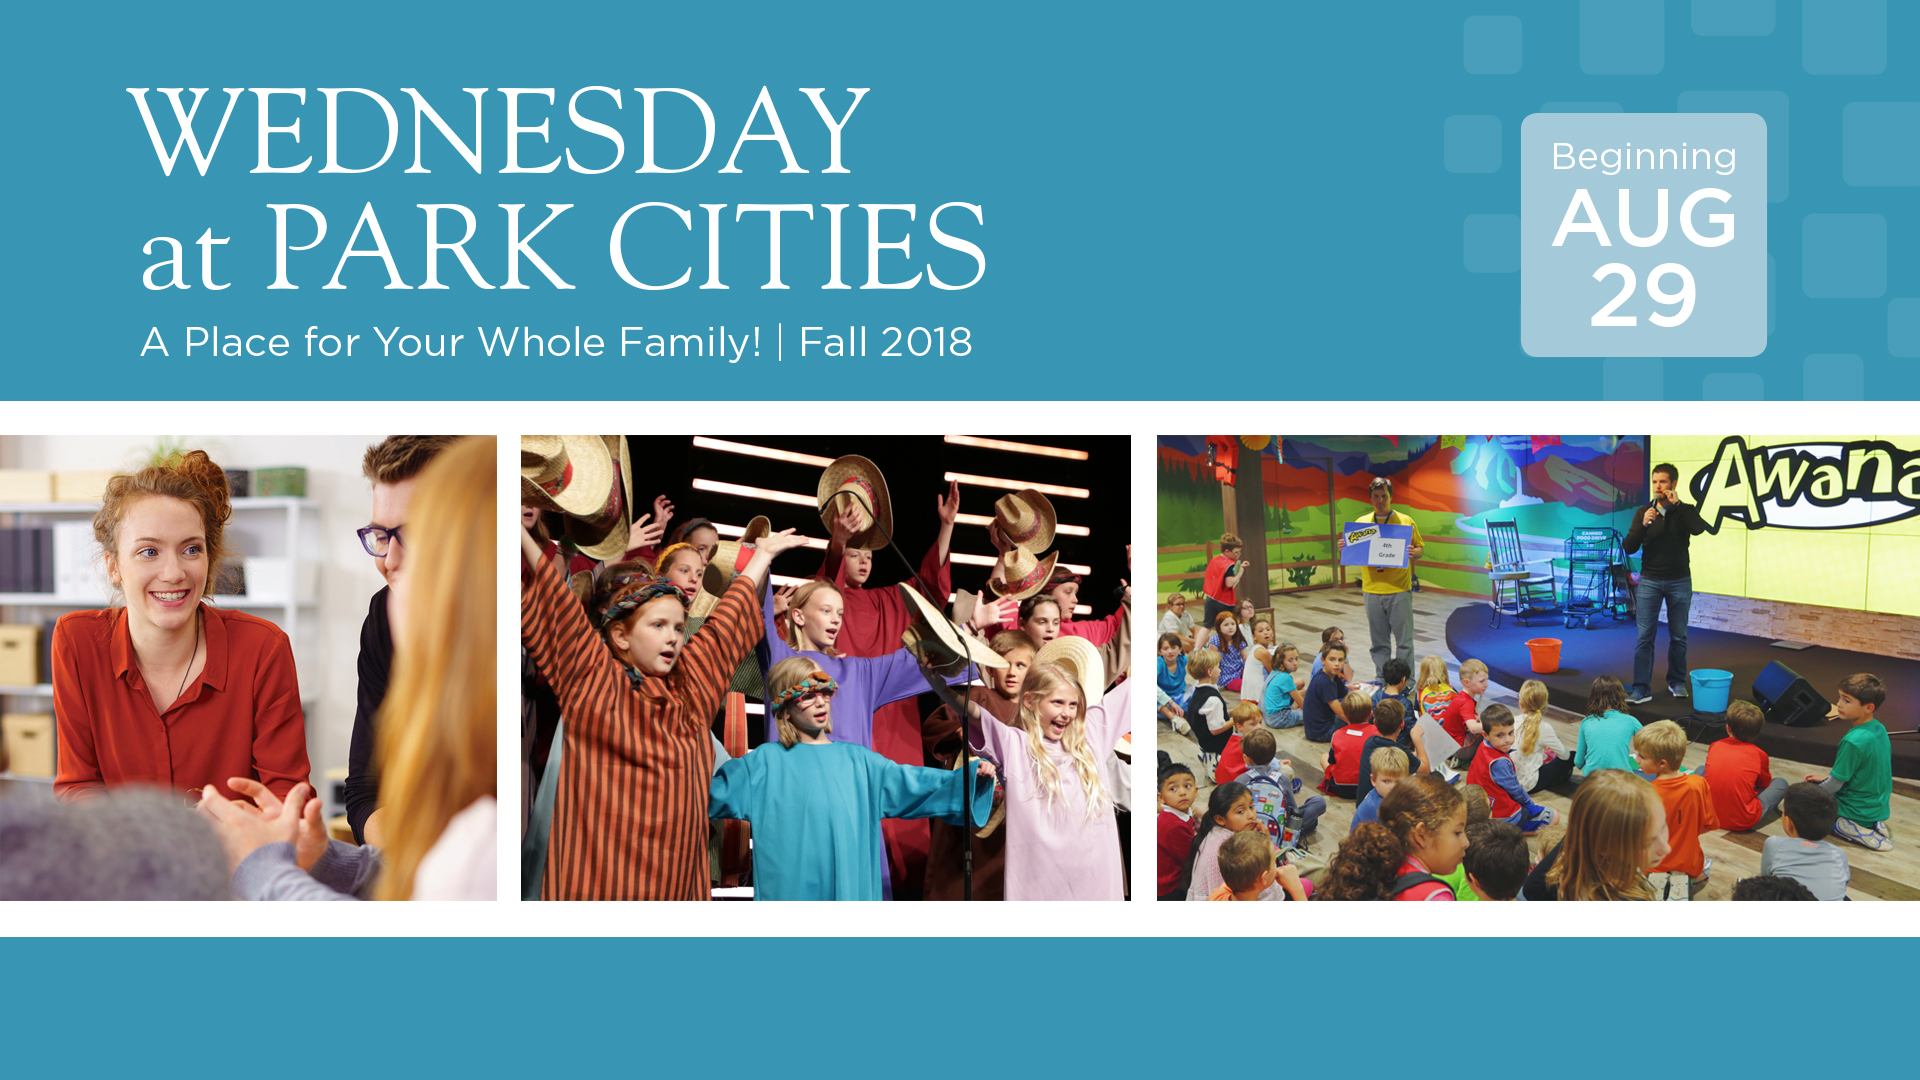 Wednesday at Park Cities